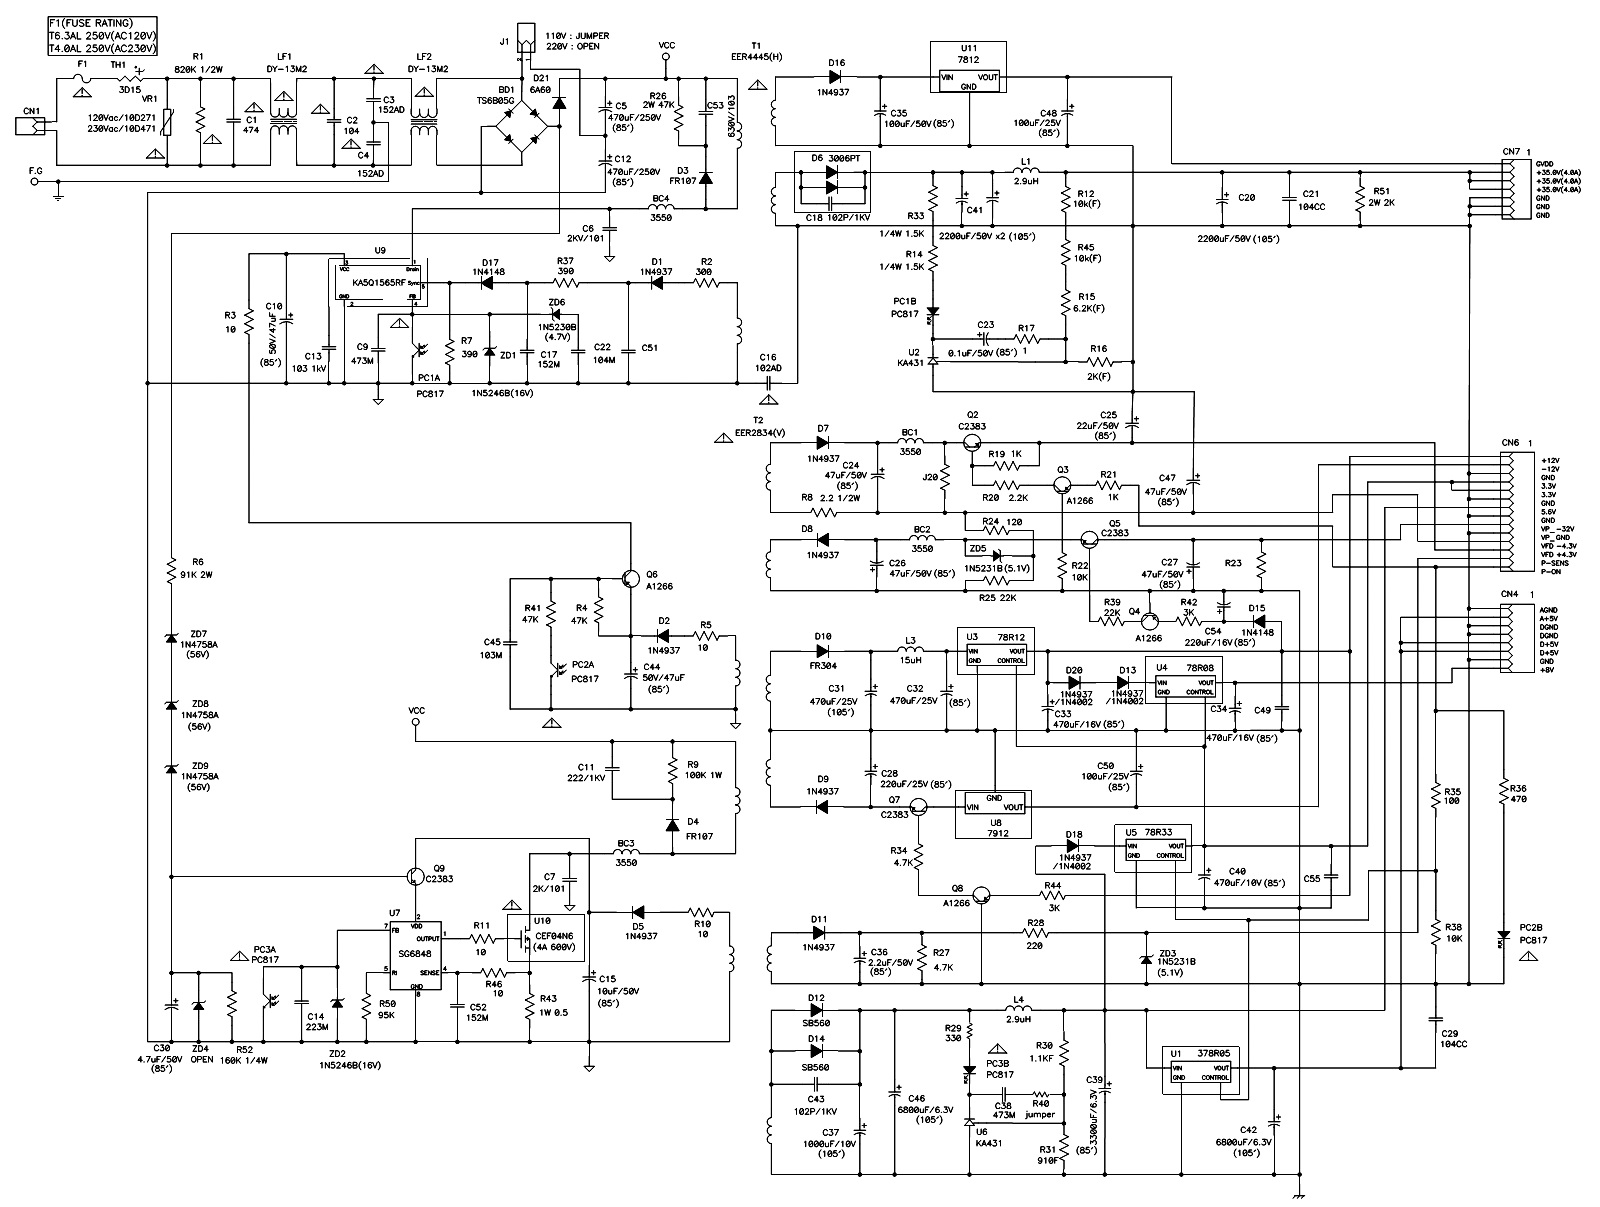 smps schematic diagram online shopping use case architecture samsung ht kp70 hts  and power amplifier circuit